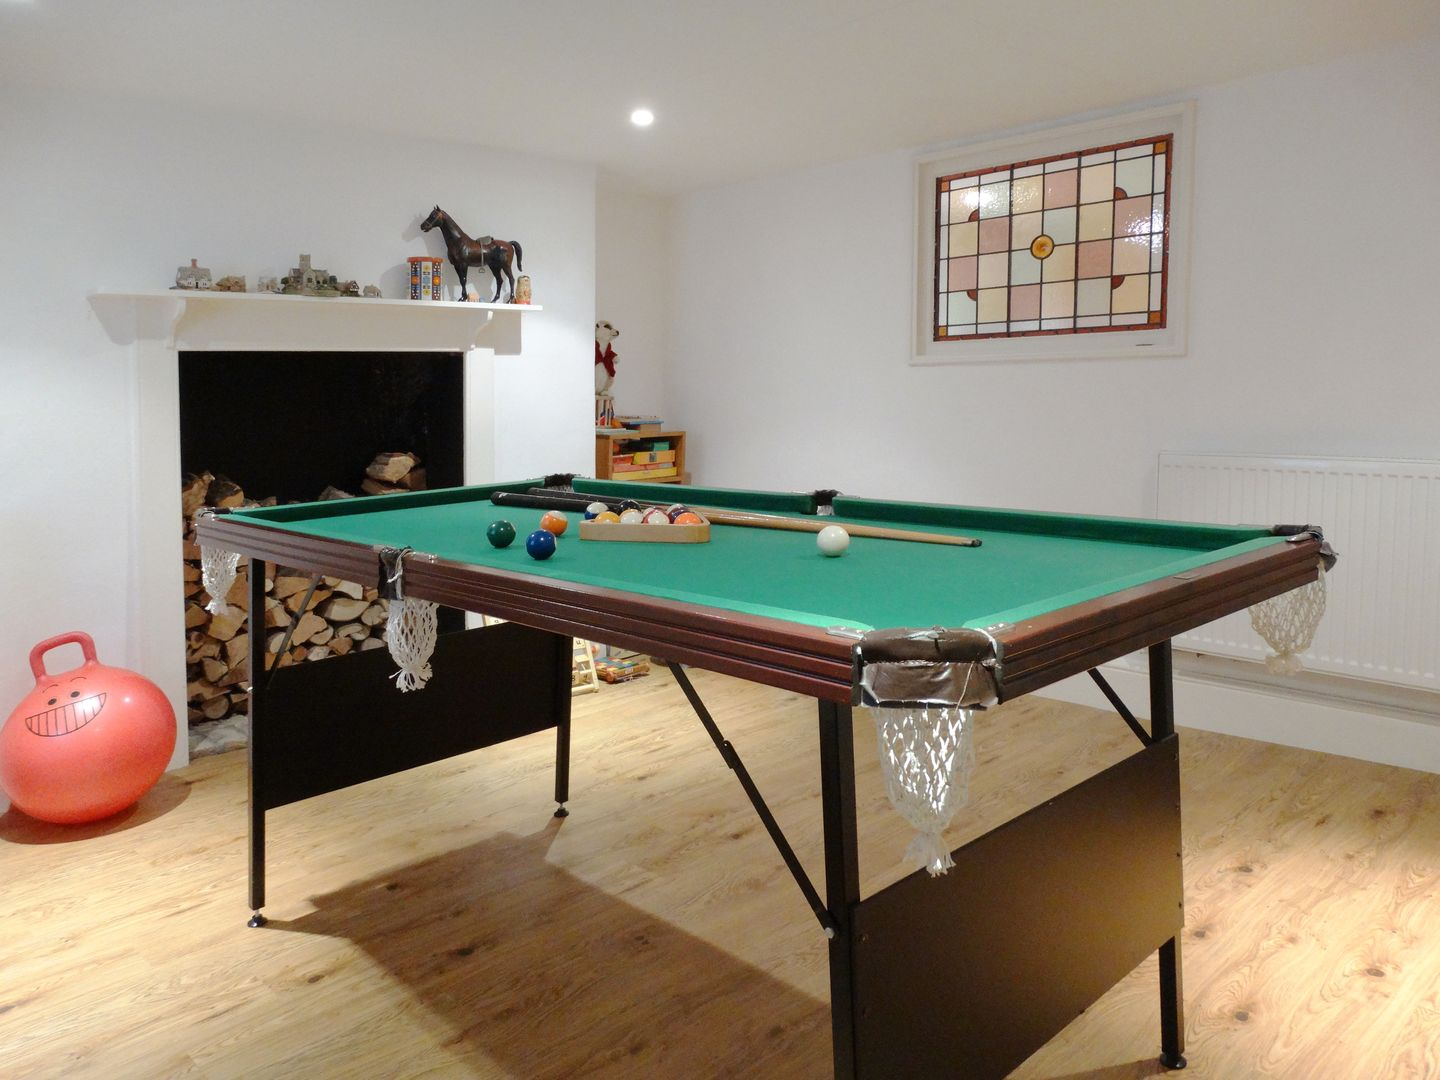 24 Victoria Road Topsham Pool Table